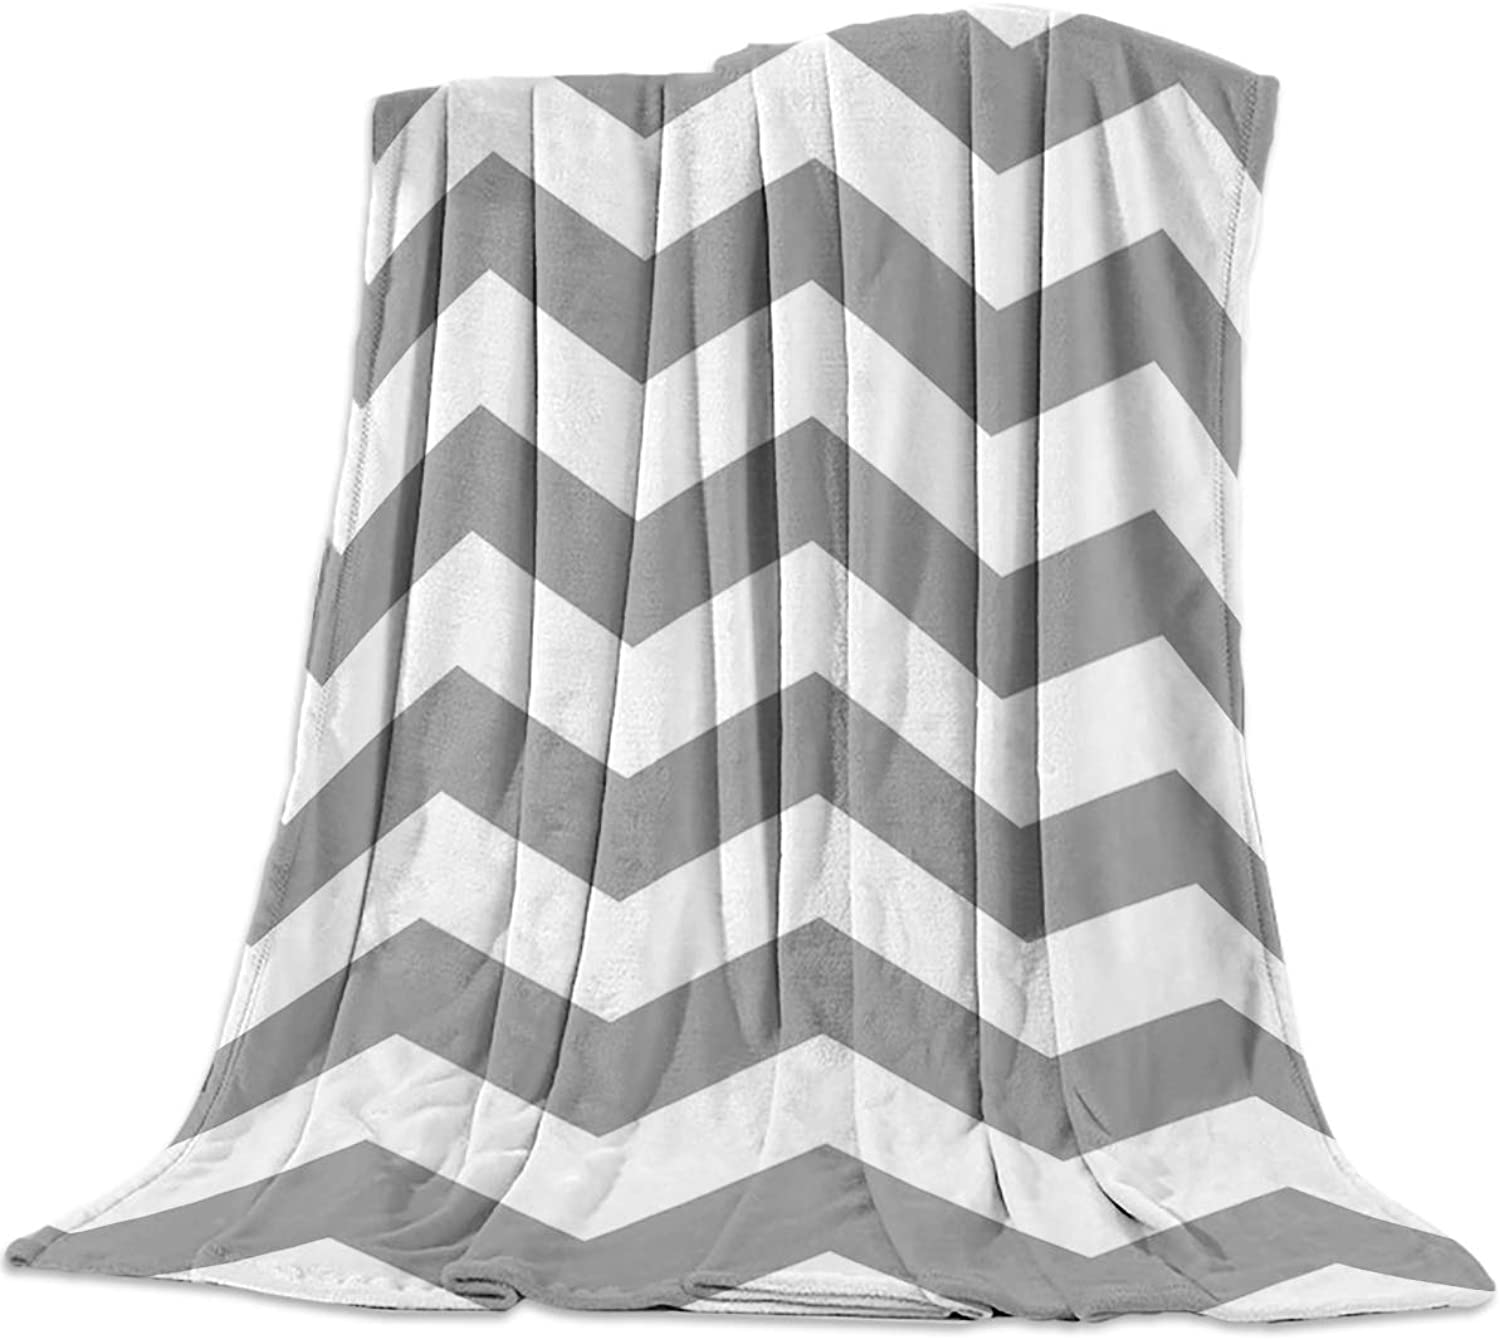 YEHO Art Gallery 49x59 Inch Flannel Fleece Bed Blanket Soft ThrowBlankets for Girls Boys,Grey and White Chevron Zigzag Wave Pattern,Cozy Lightweight Blankets for Bedroom Living Room Sofa Couch